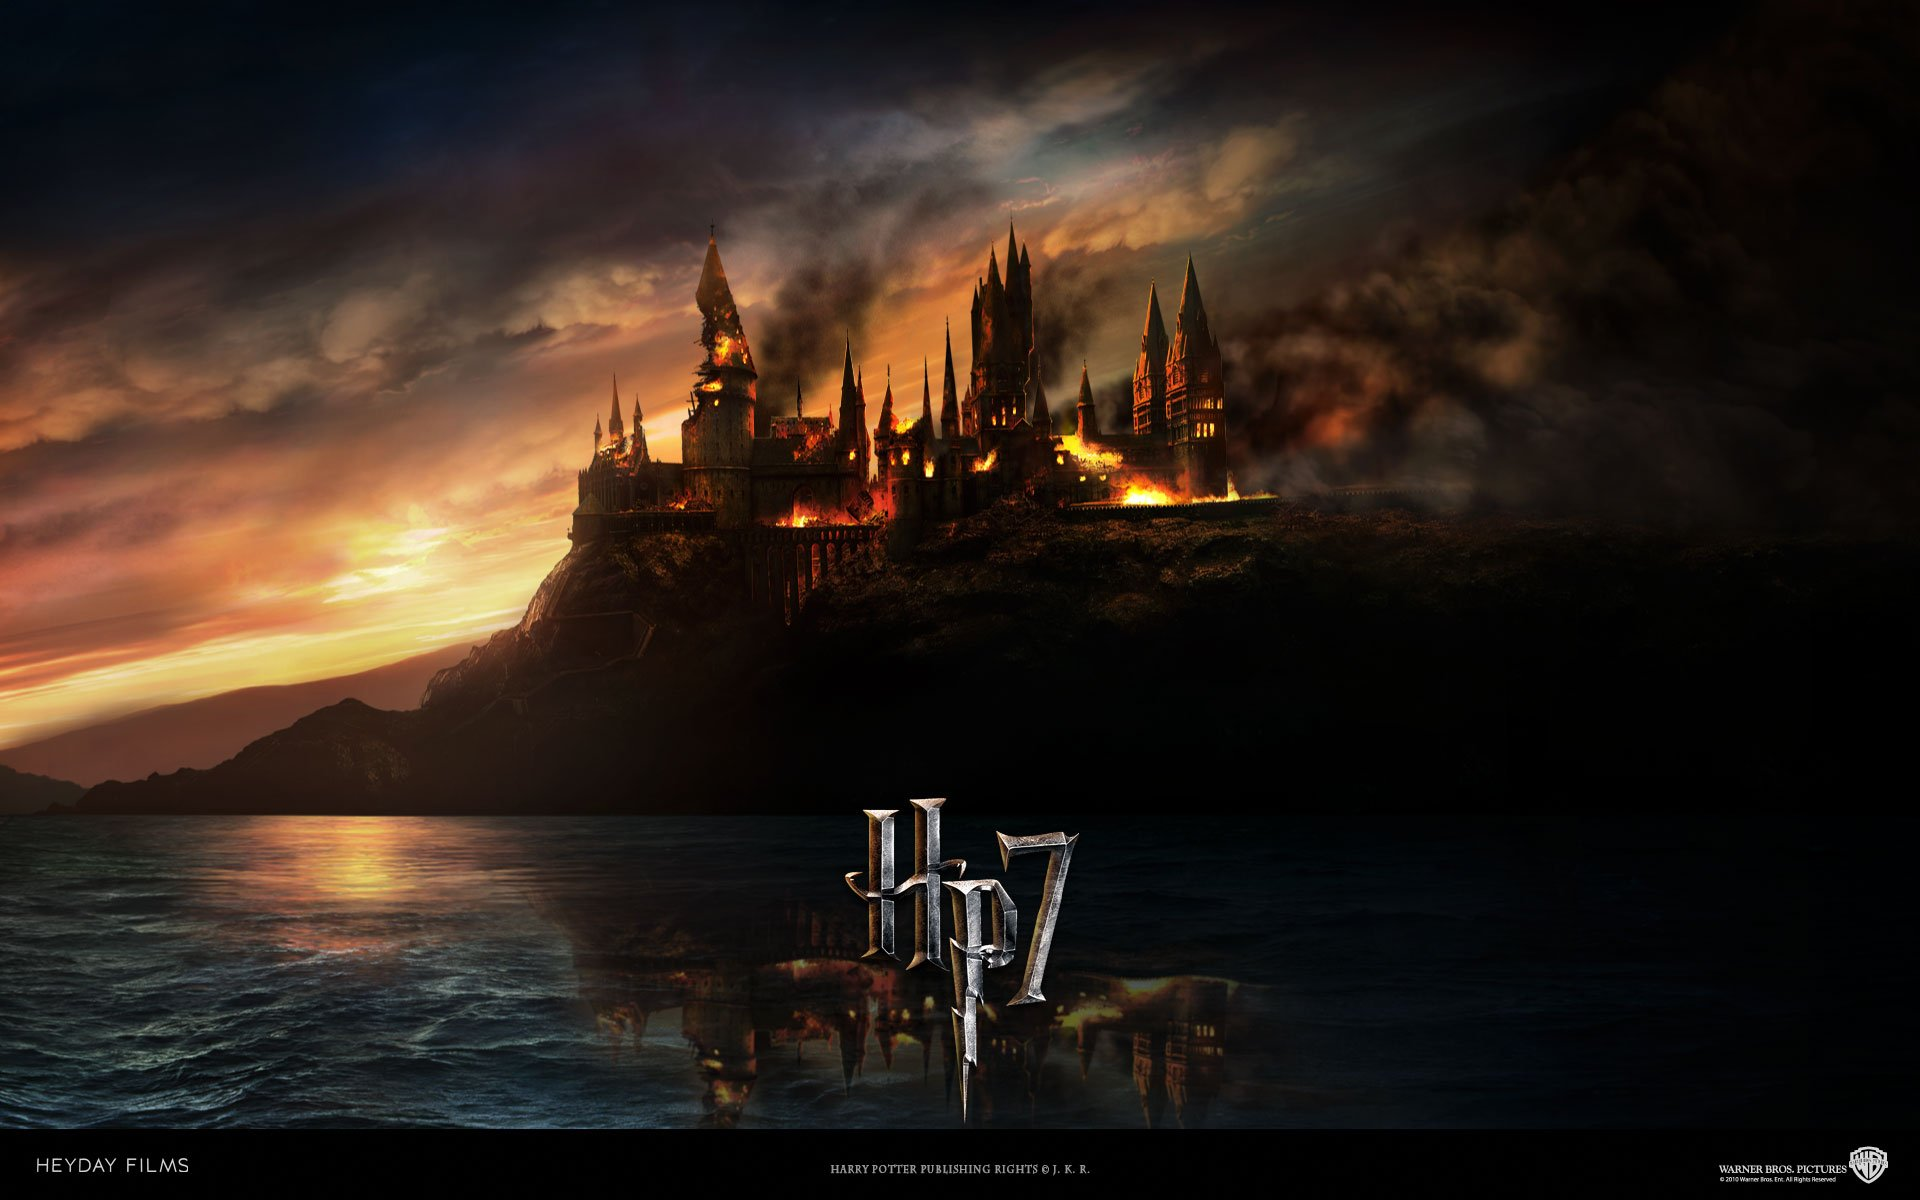 Harry Potter 7 2010 Wallpapers HD Wallpapers 1920x1200